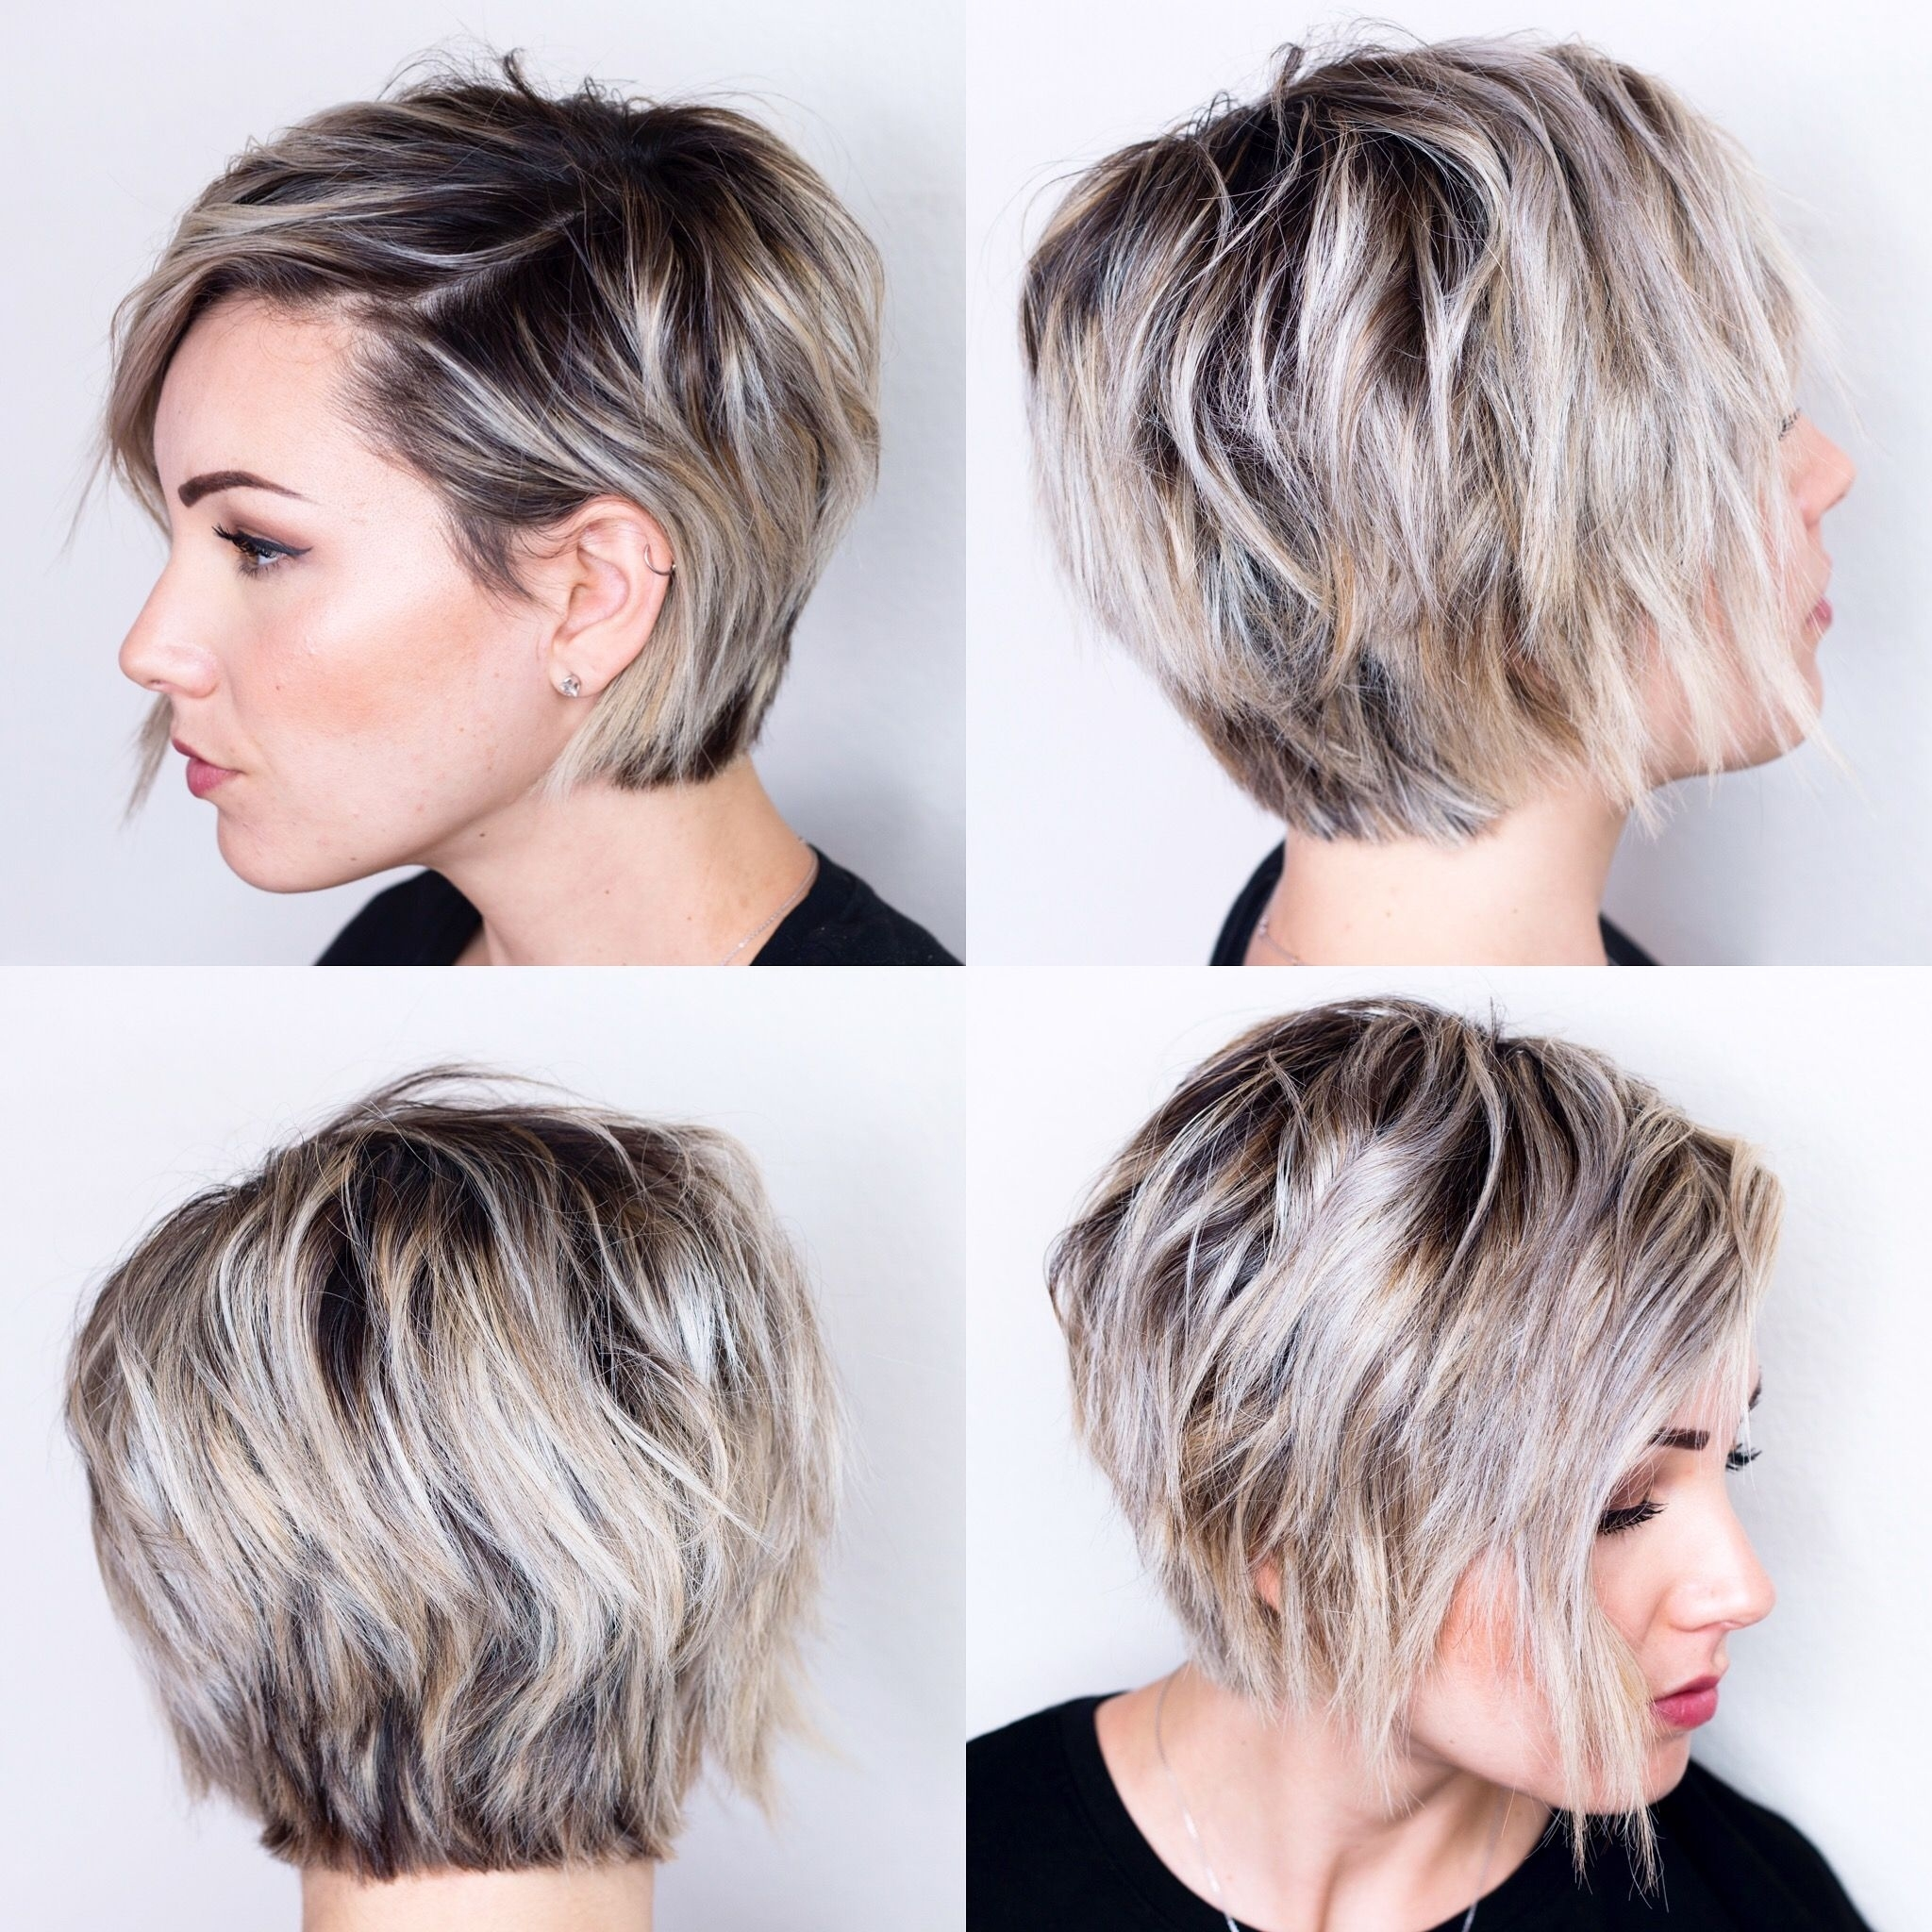 360 View Of Short Hair | H A I R | Pinterest | Short Hair, Shorts with Hairstyle For Oval Face Short